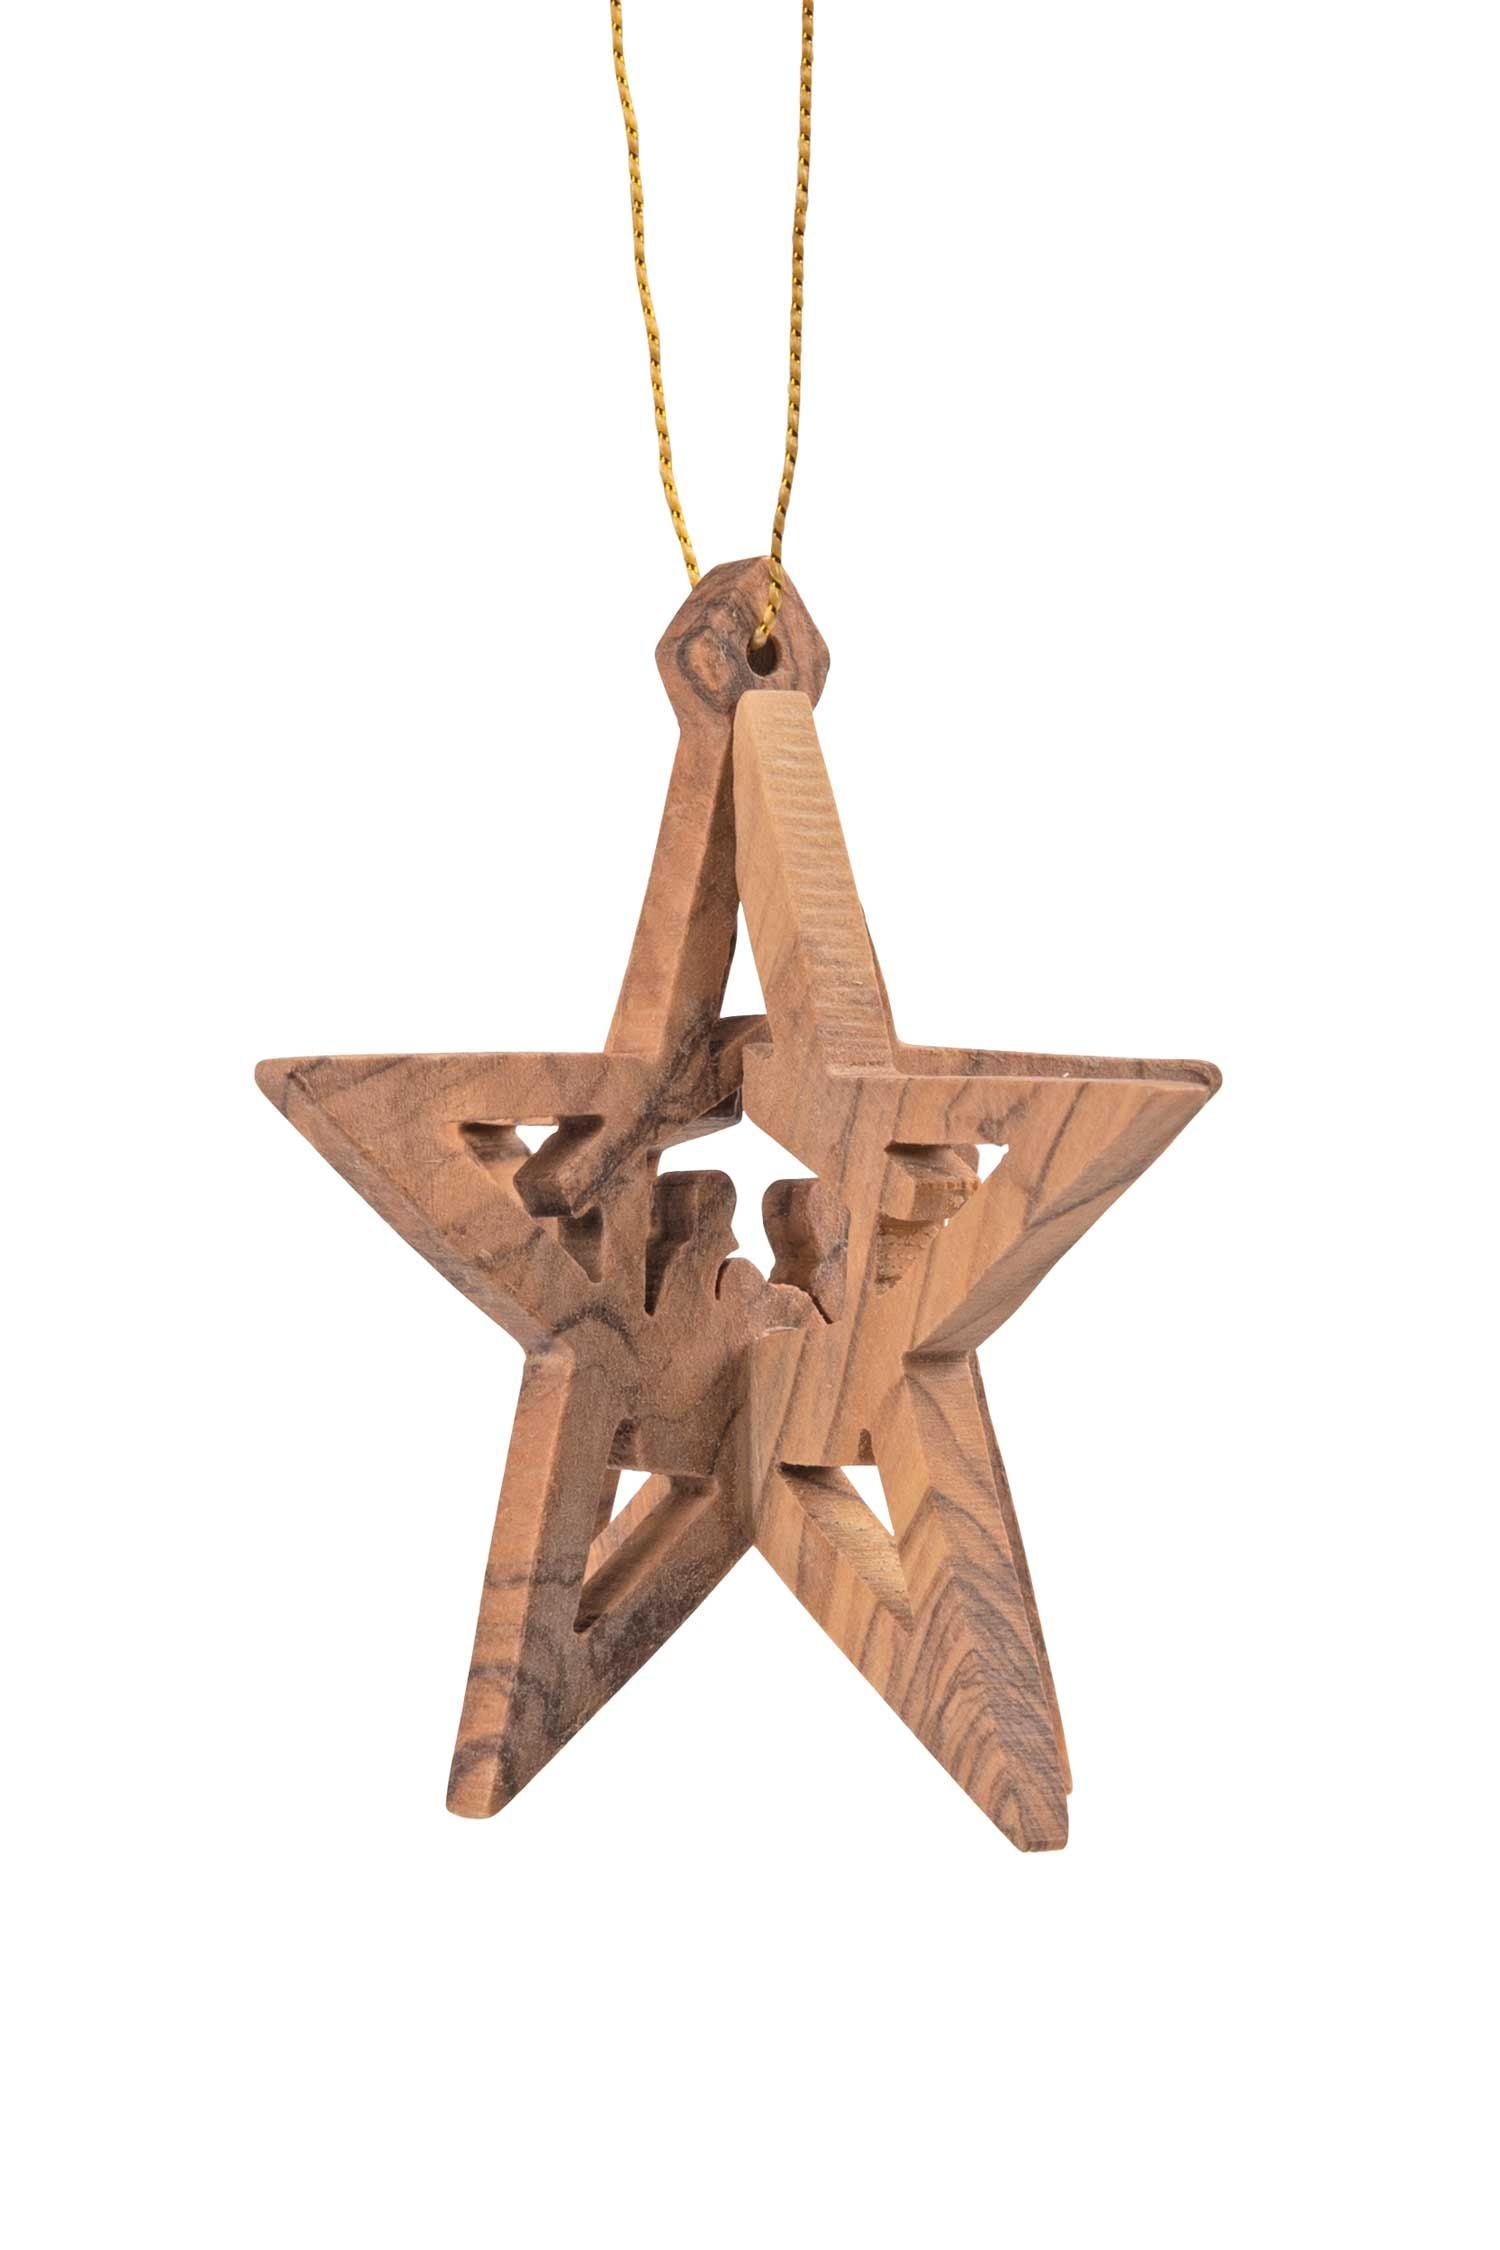 Wood Star Nativity